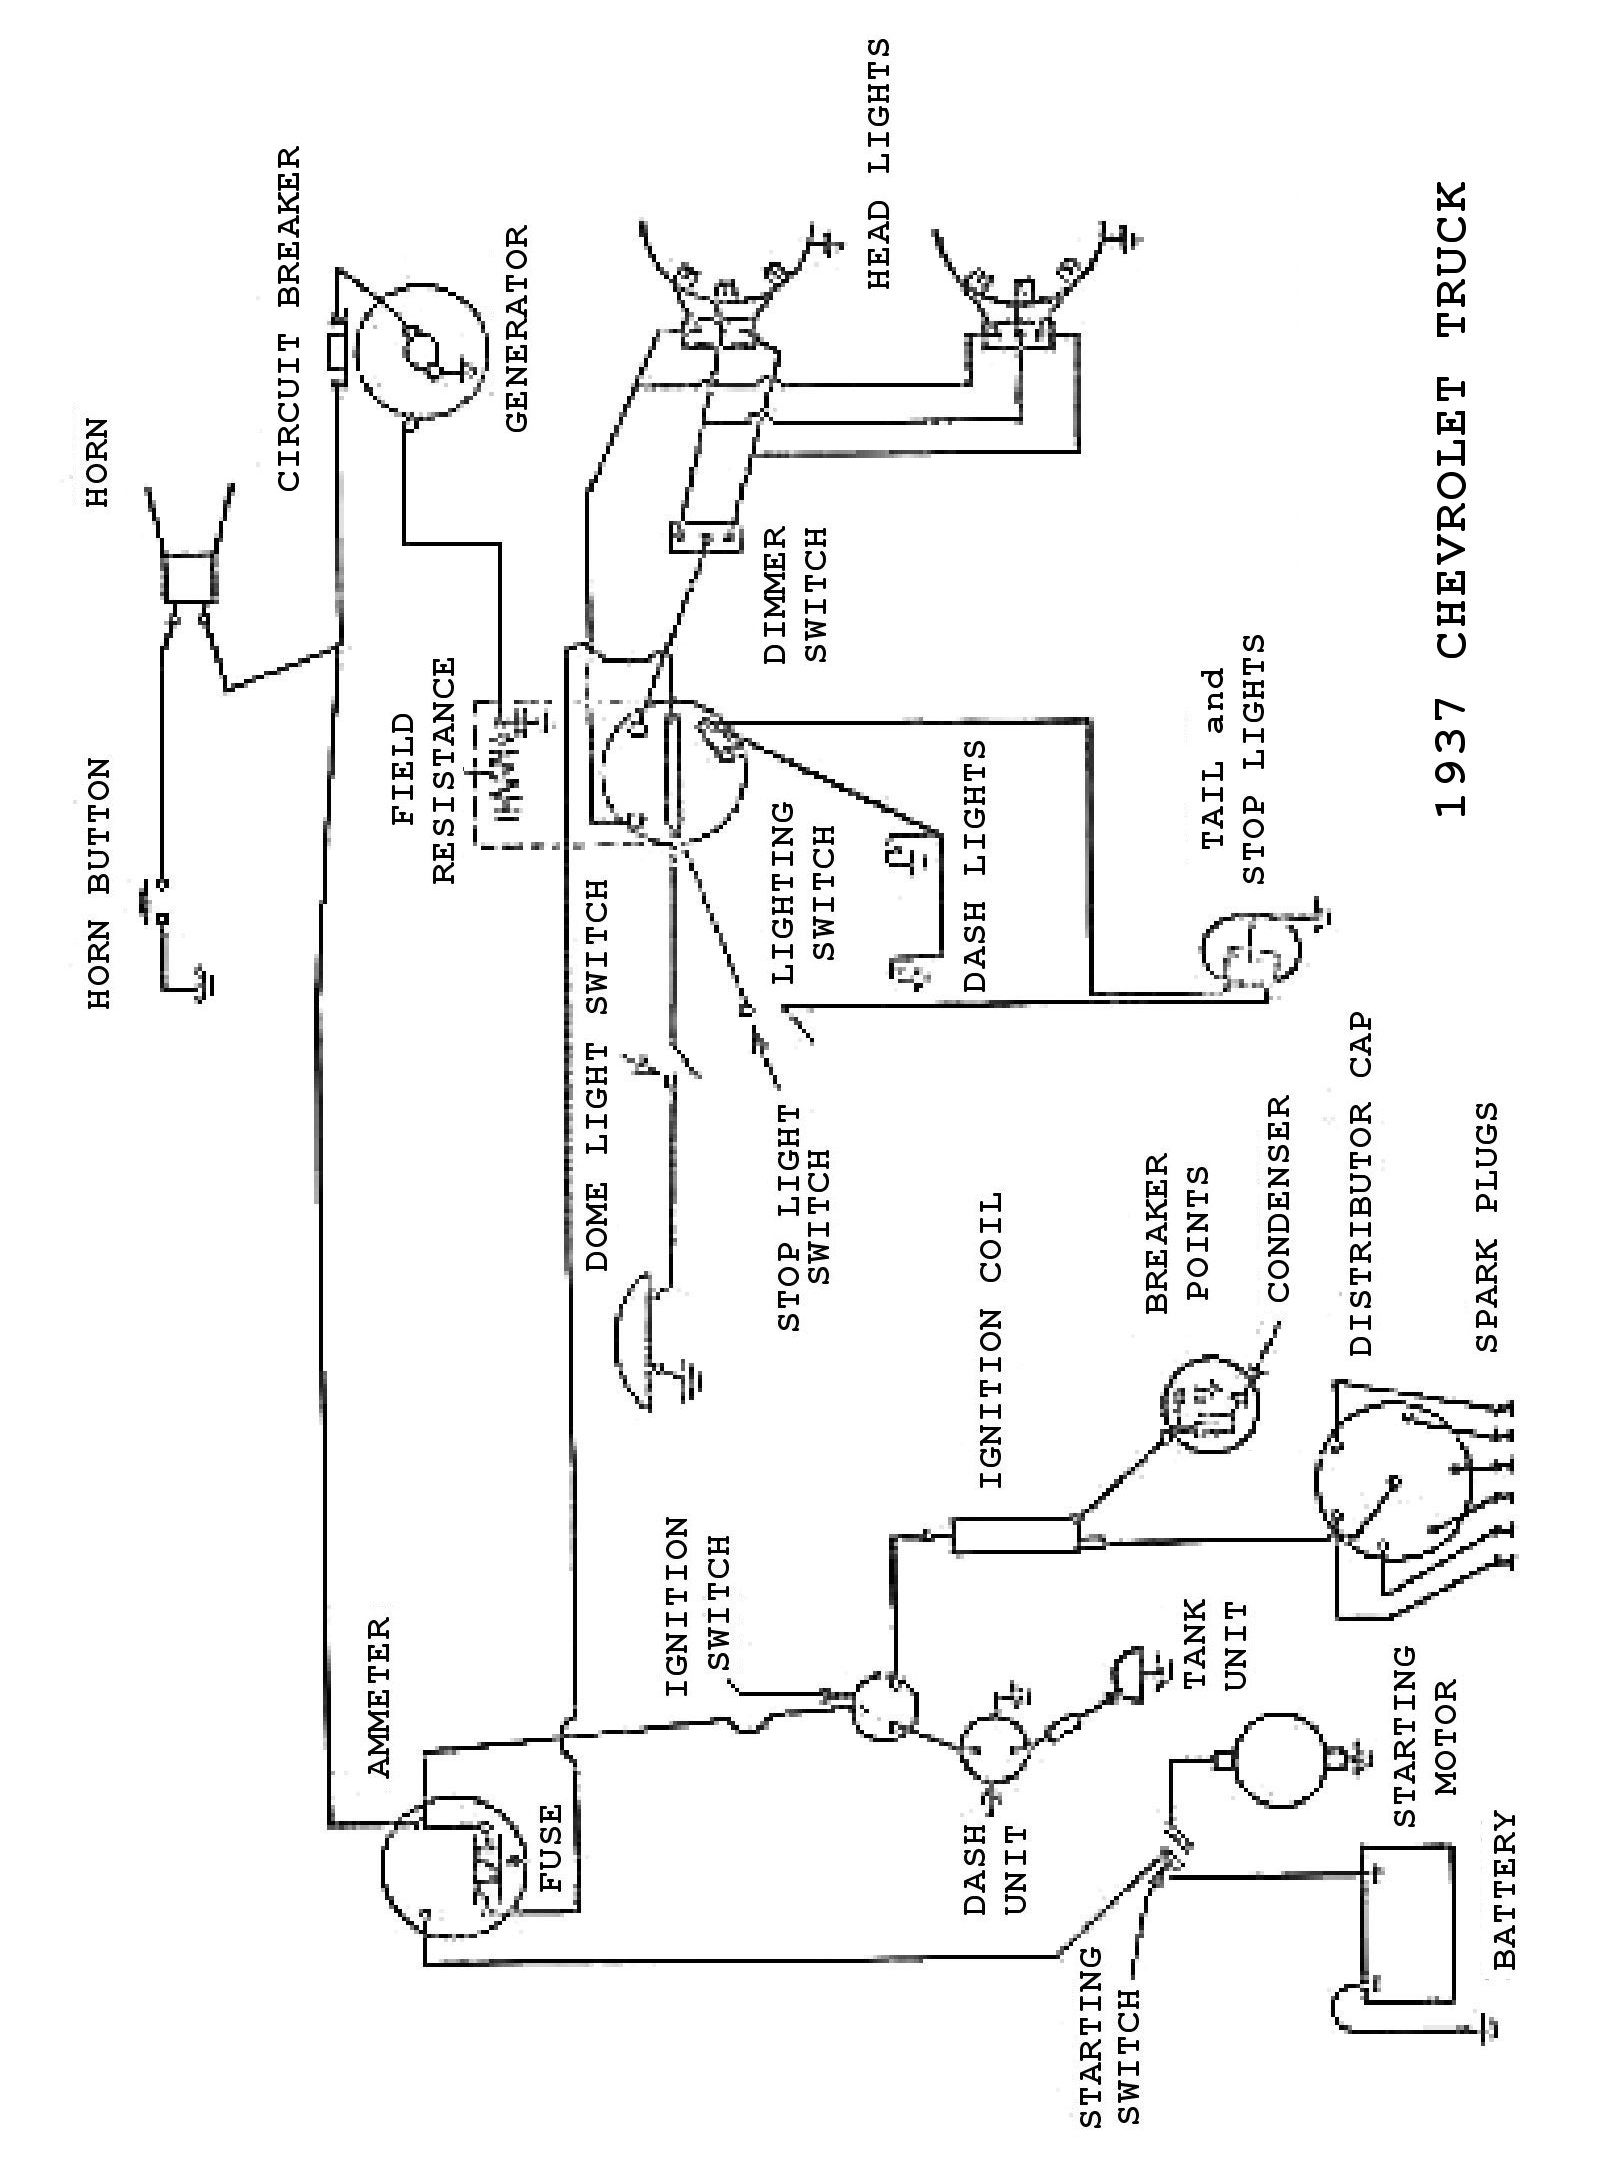 1937 Chevy Radio Wiring Diagram Schematic Starting Know About Oldsmobile  Cutlass Wiring Diagram 1937 Ford Wiring Diagram